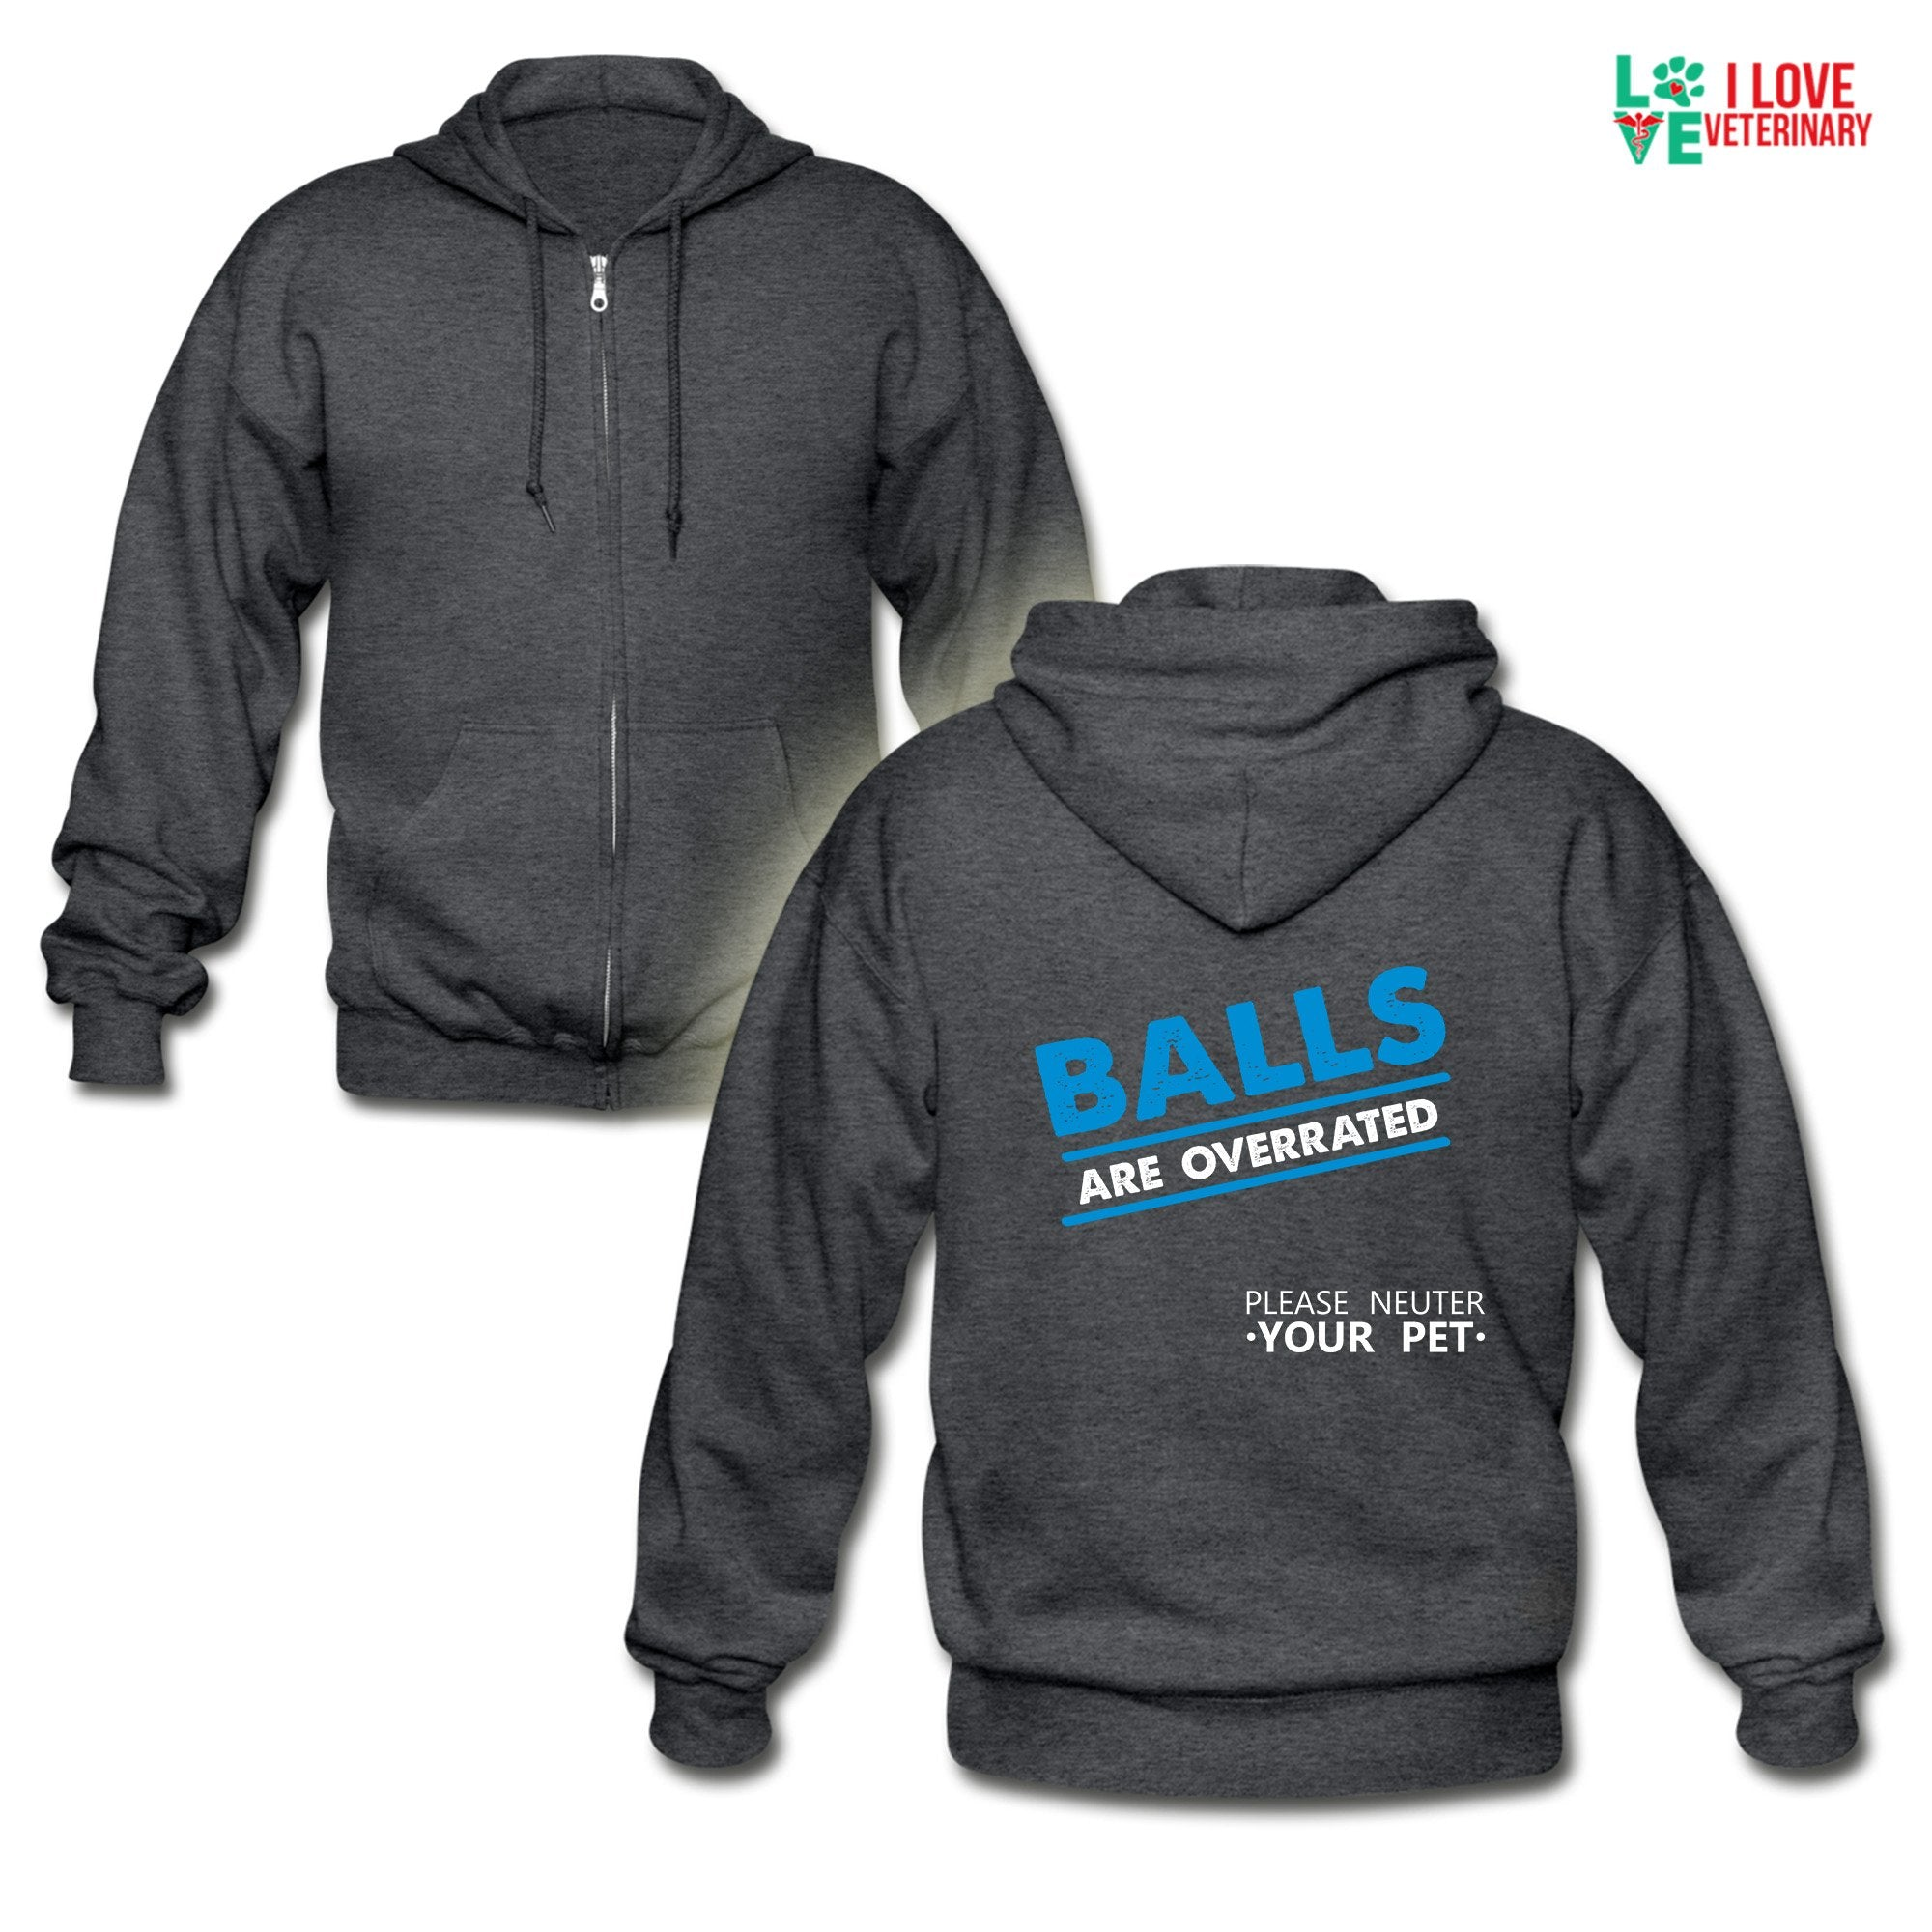 Veterinary - Balls are overrated Unisex Zip Hoodie-Gildan Heavy Blend Adult Zip Hoodie-I love Veterinary